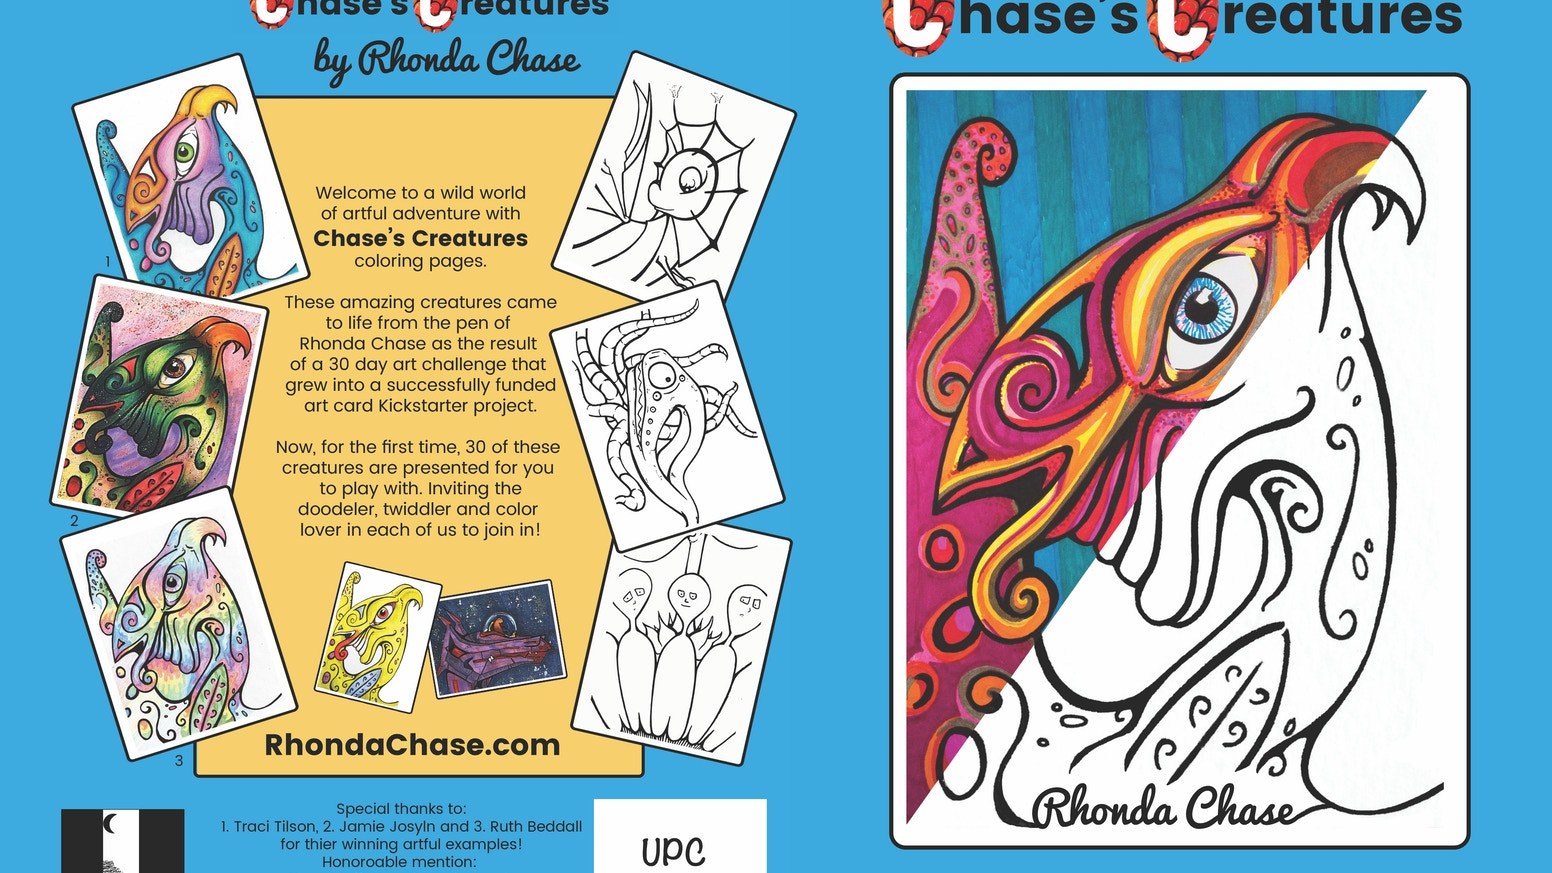 Color your way through the whimsical world of Chase's Creatures in the first ever coloring pages book by Rhonda Chase